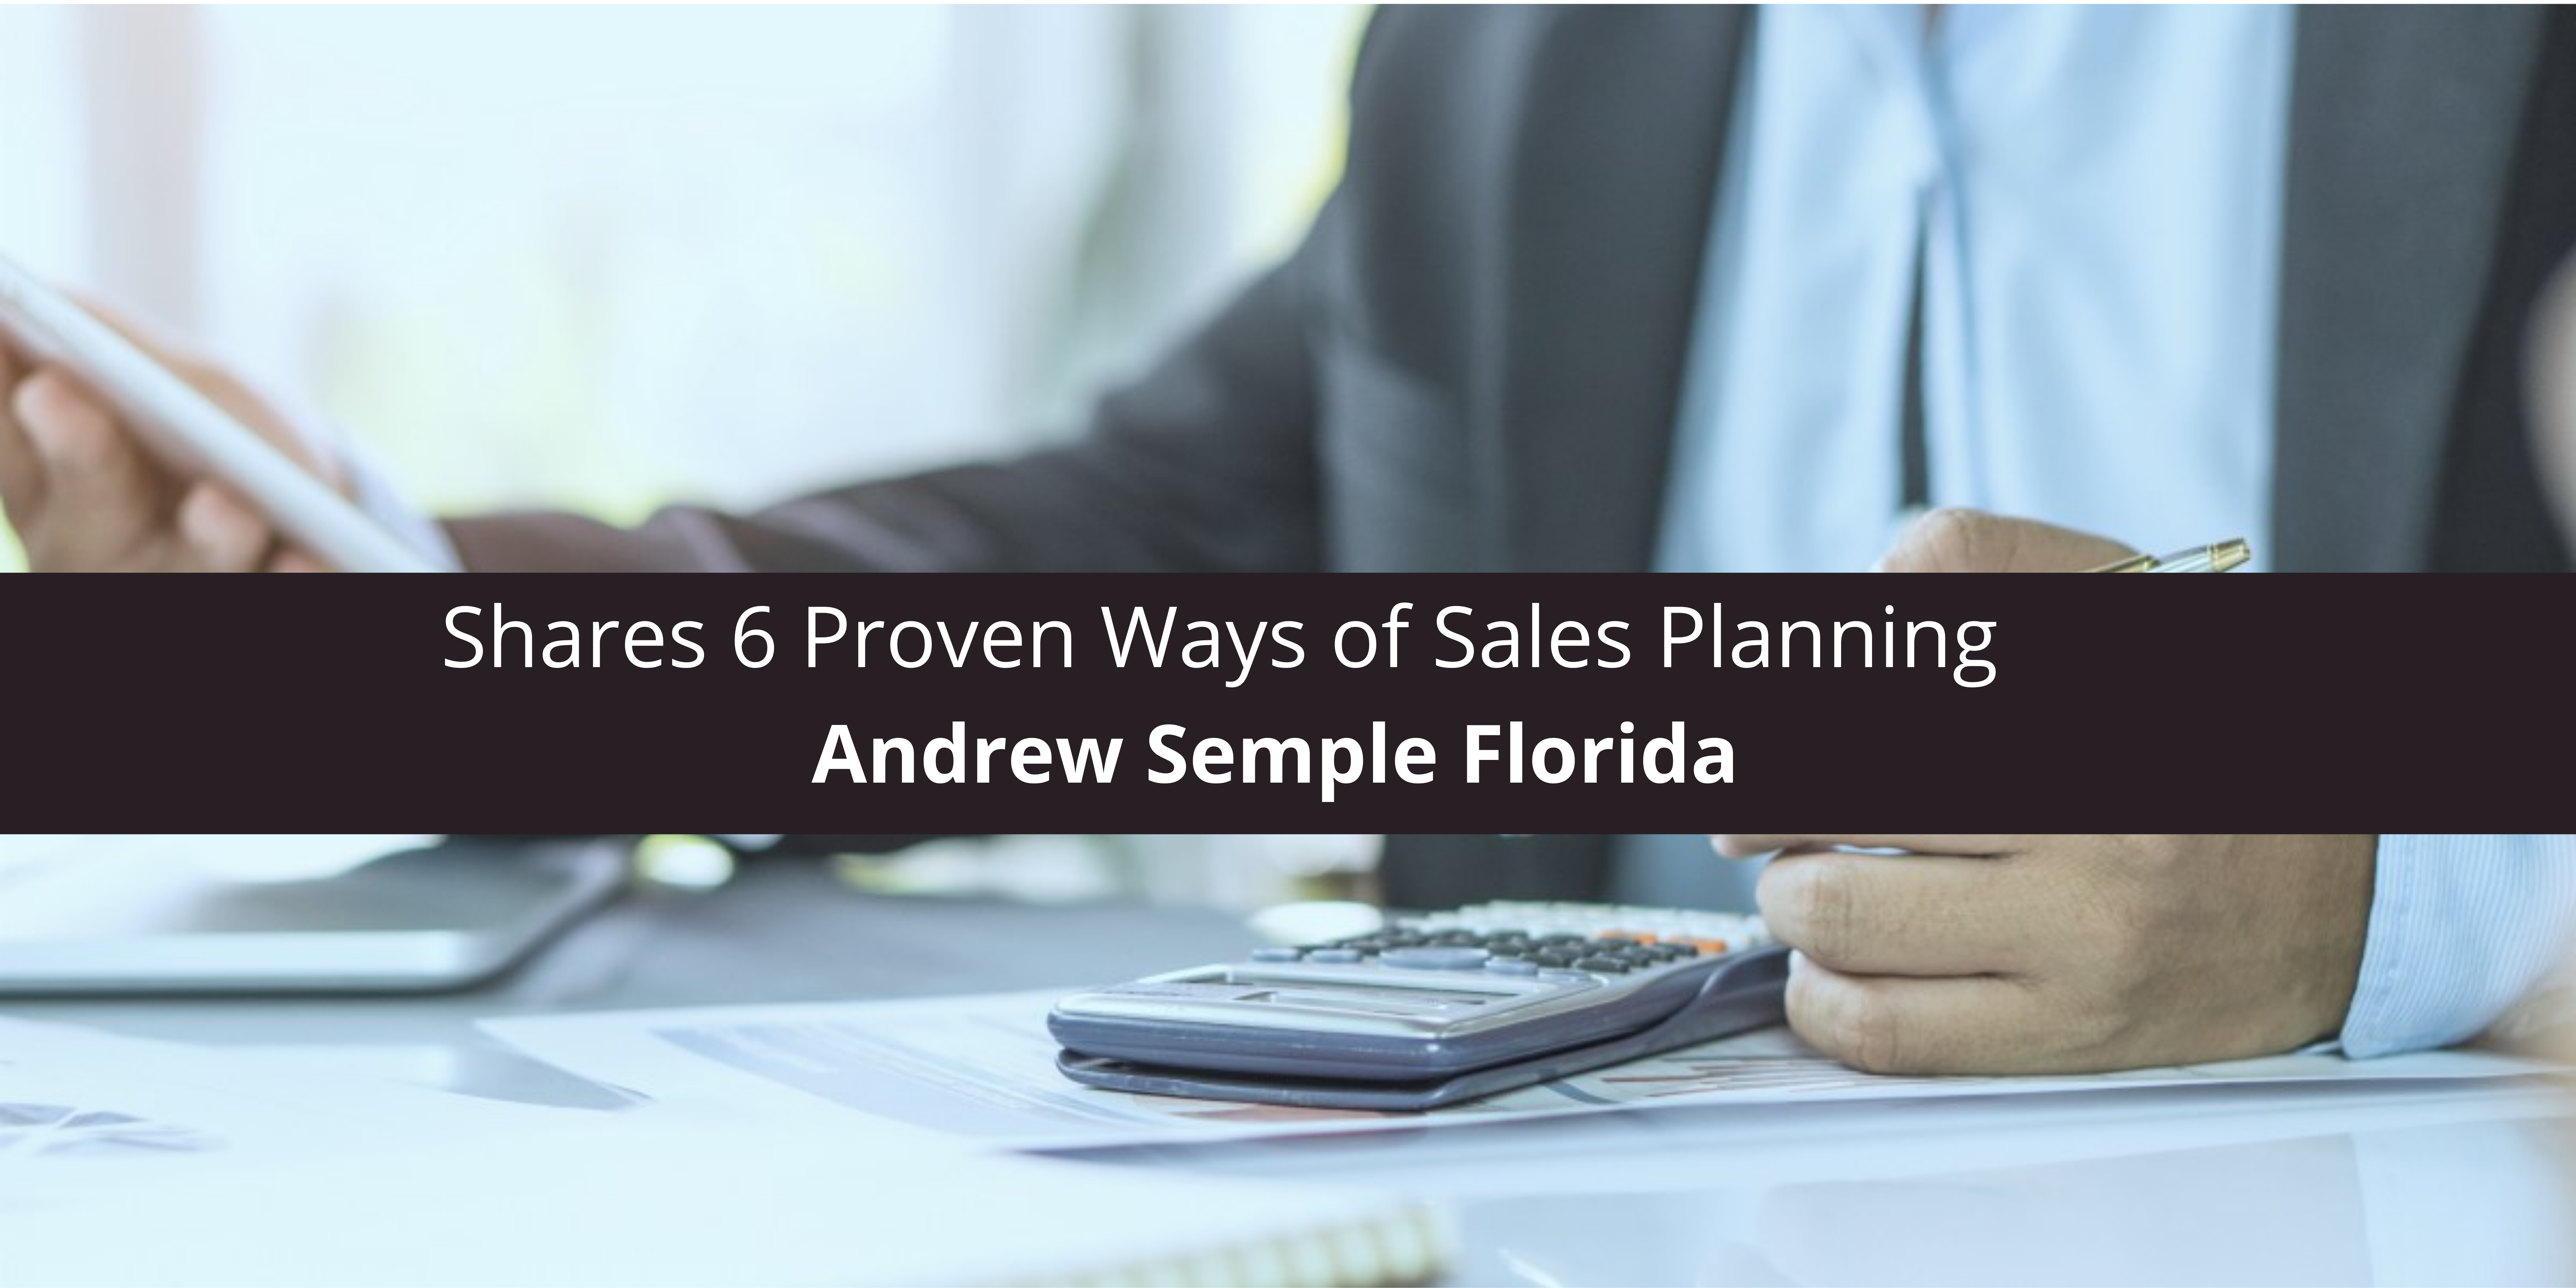 Andrew Semple Florida Shares 6 Proven Ways of Sales Planning